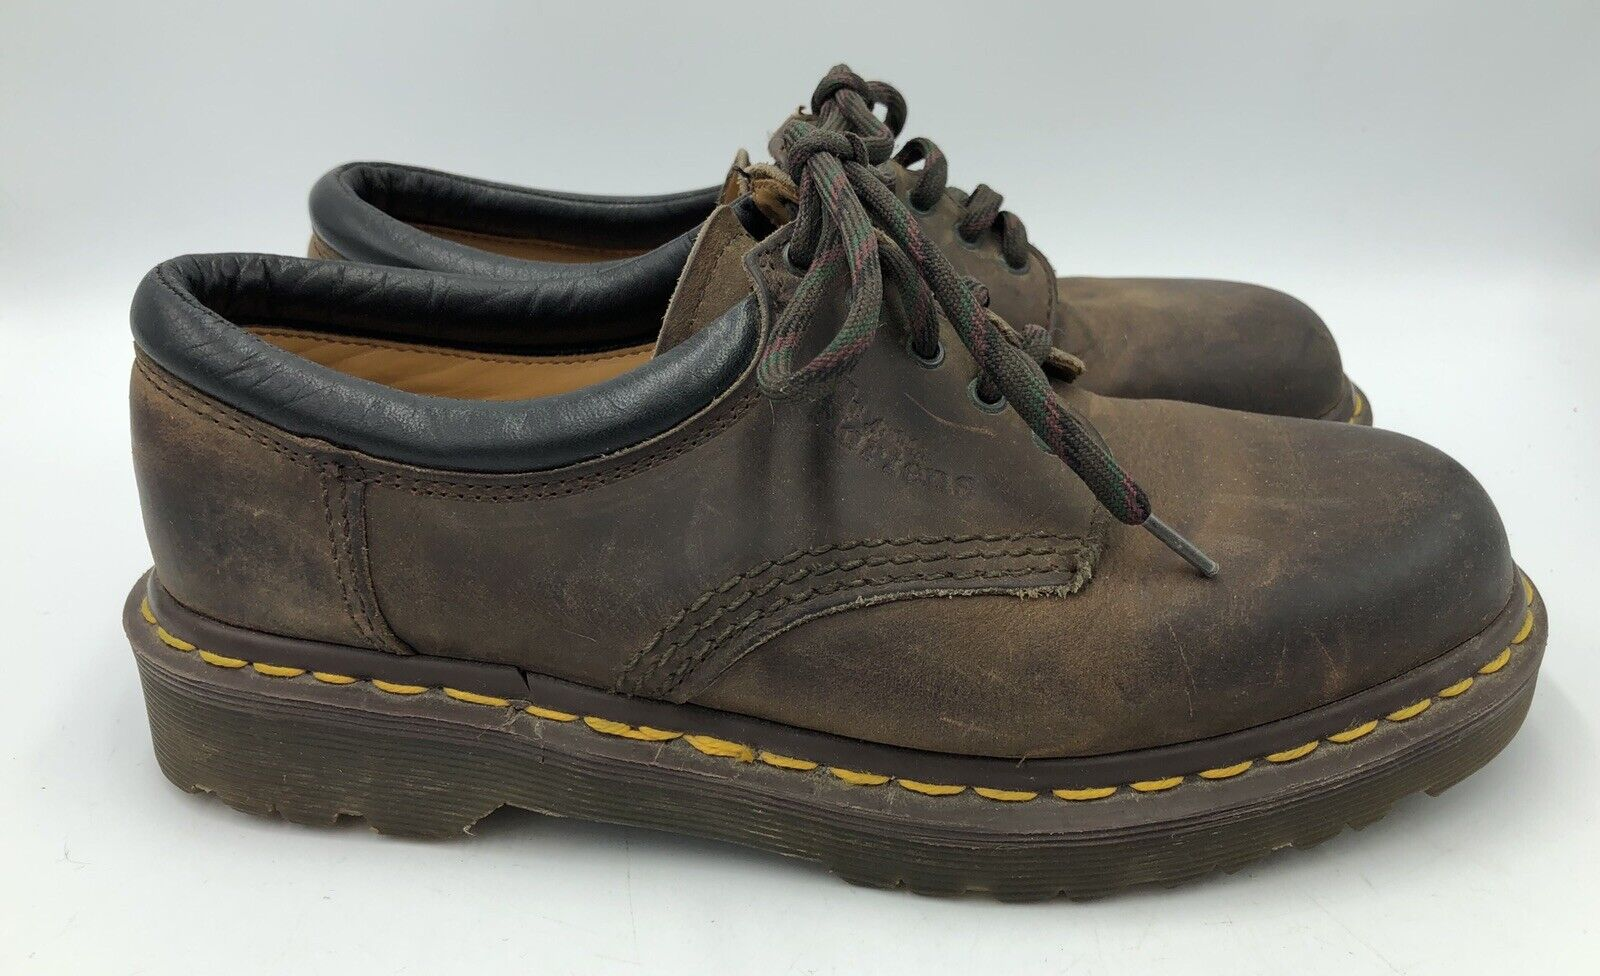 Dr Martens Vintage Brown AW04 Oxfords Made England EUC Women's Size 6 UK US 8